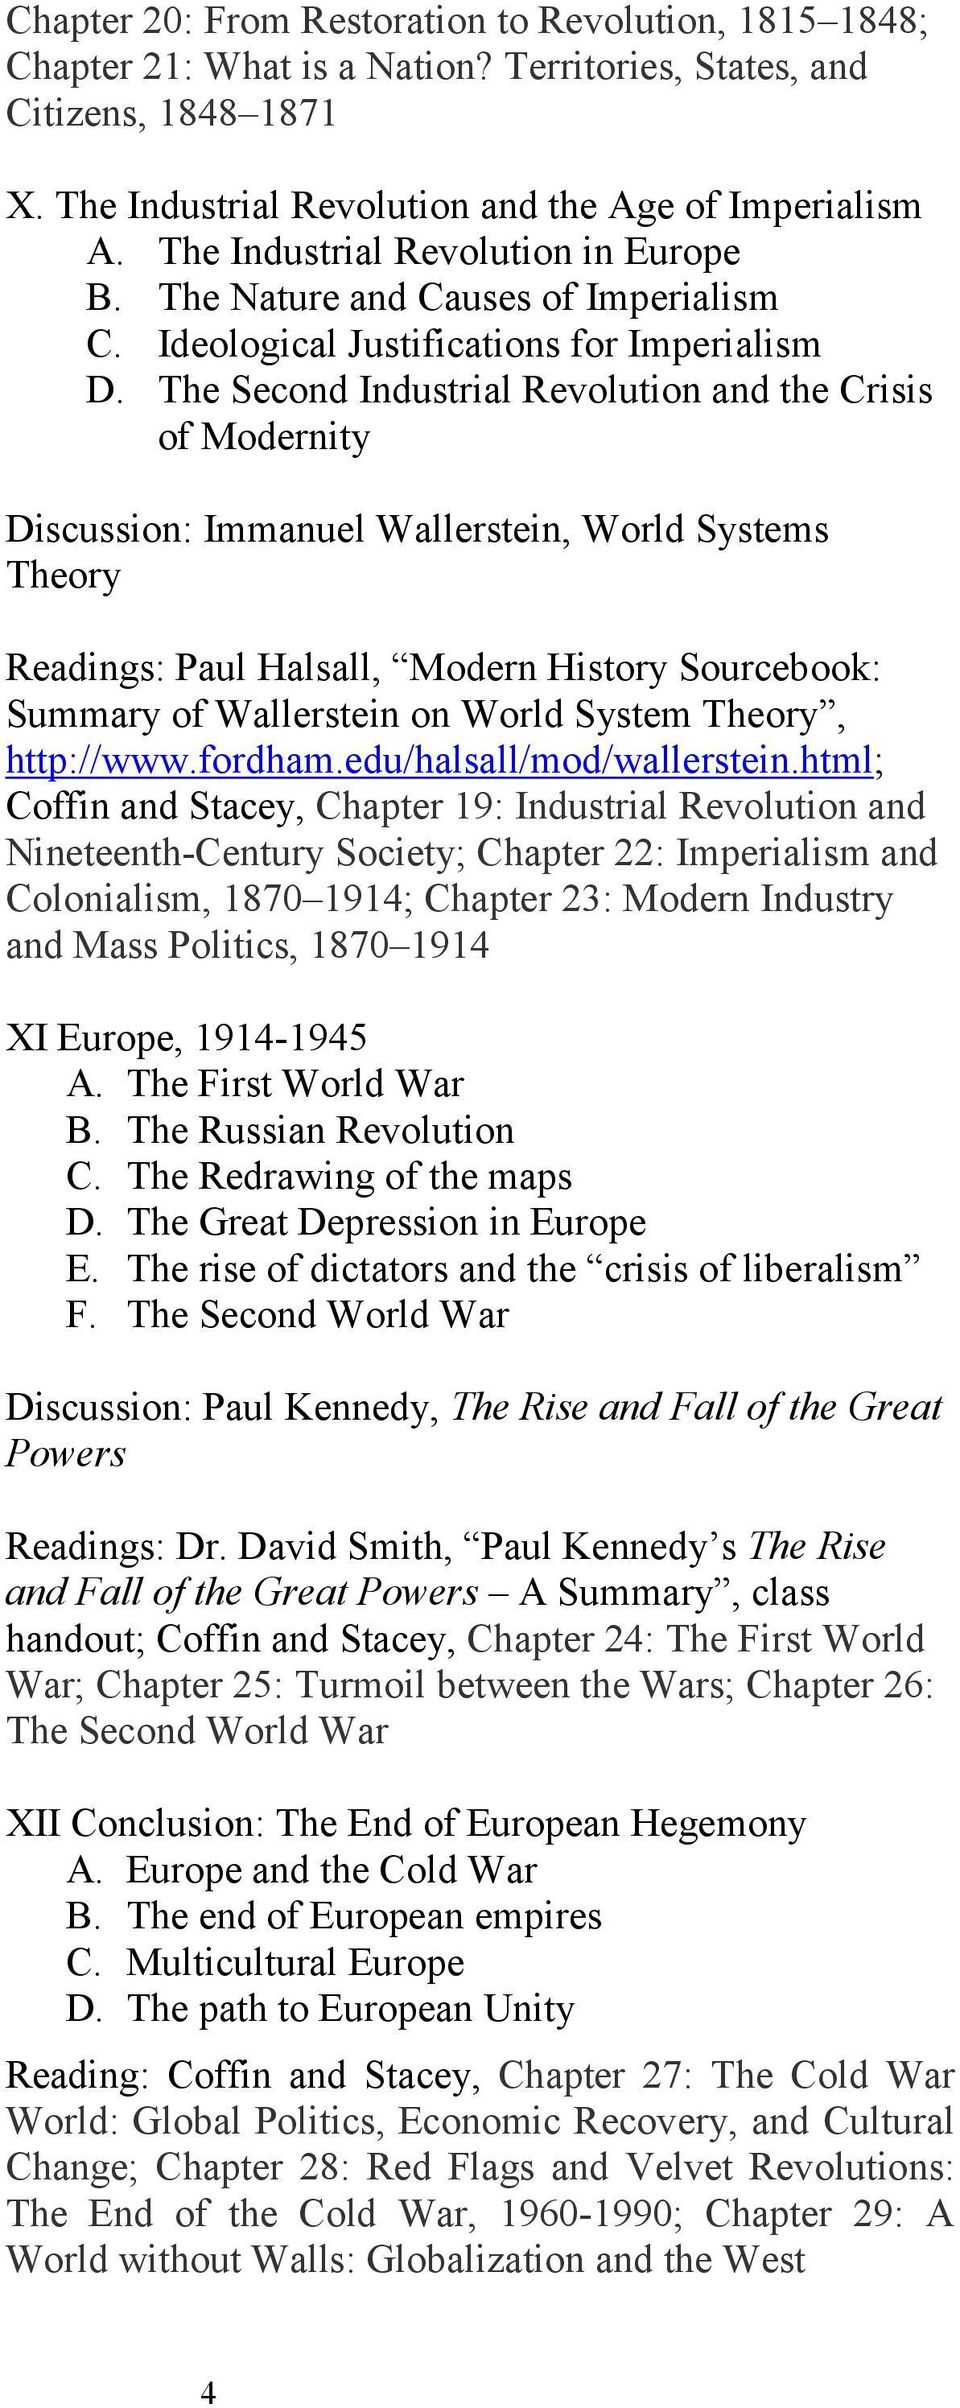 The Second Industrial Revolution and the Crisis of Modernity Discussion: Immanuel Wallerstein, World Systems Theory Readings: Paul Halsall, Modern History Sourcebook: Summary of Wallerstein on World